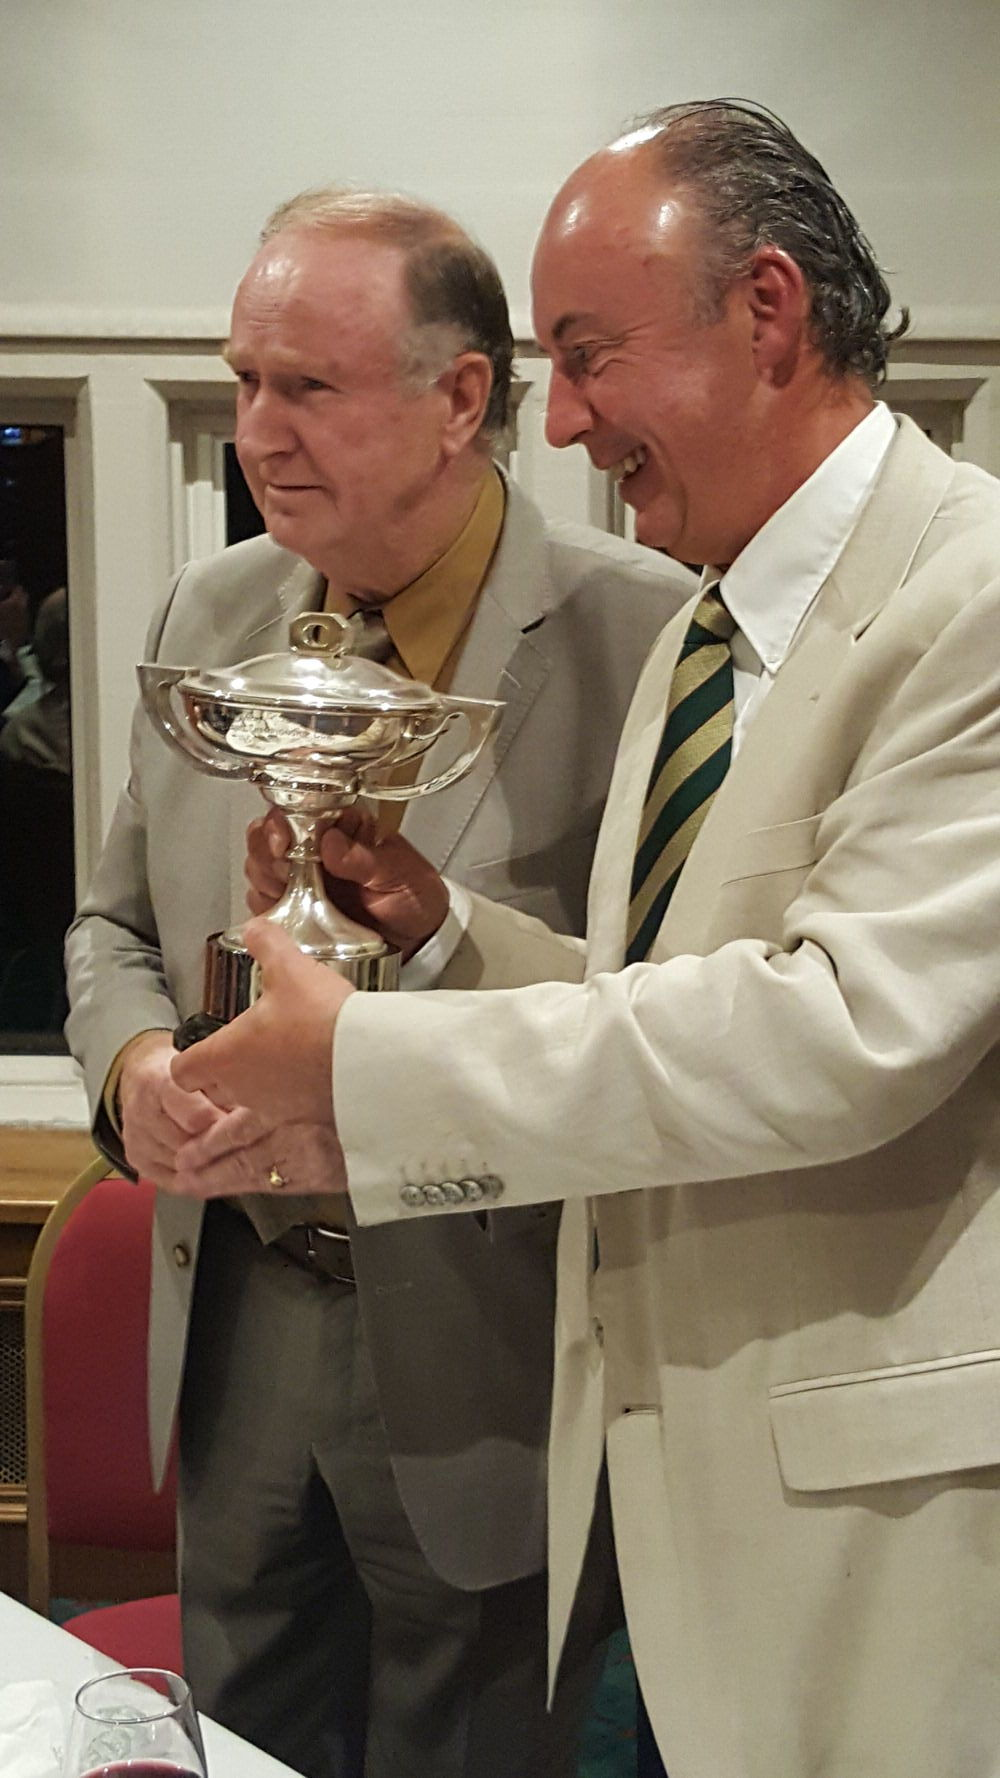 Dermot Gilleece, chairman of the IGWA, presents the Carr Cup to Dougie Heather of Portmarnock GC.